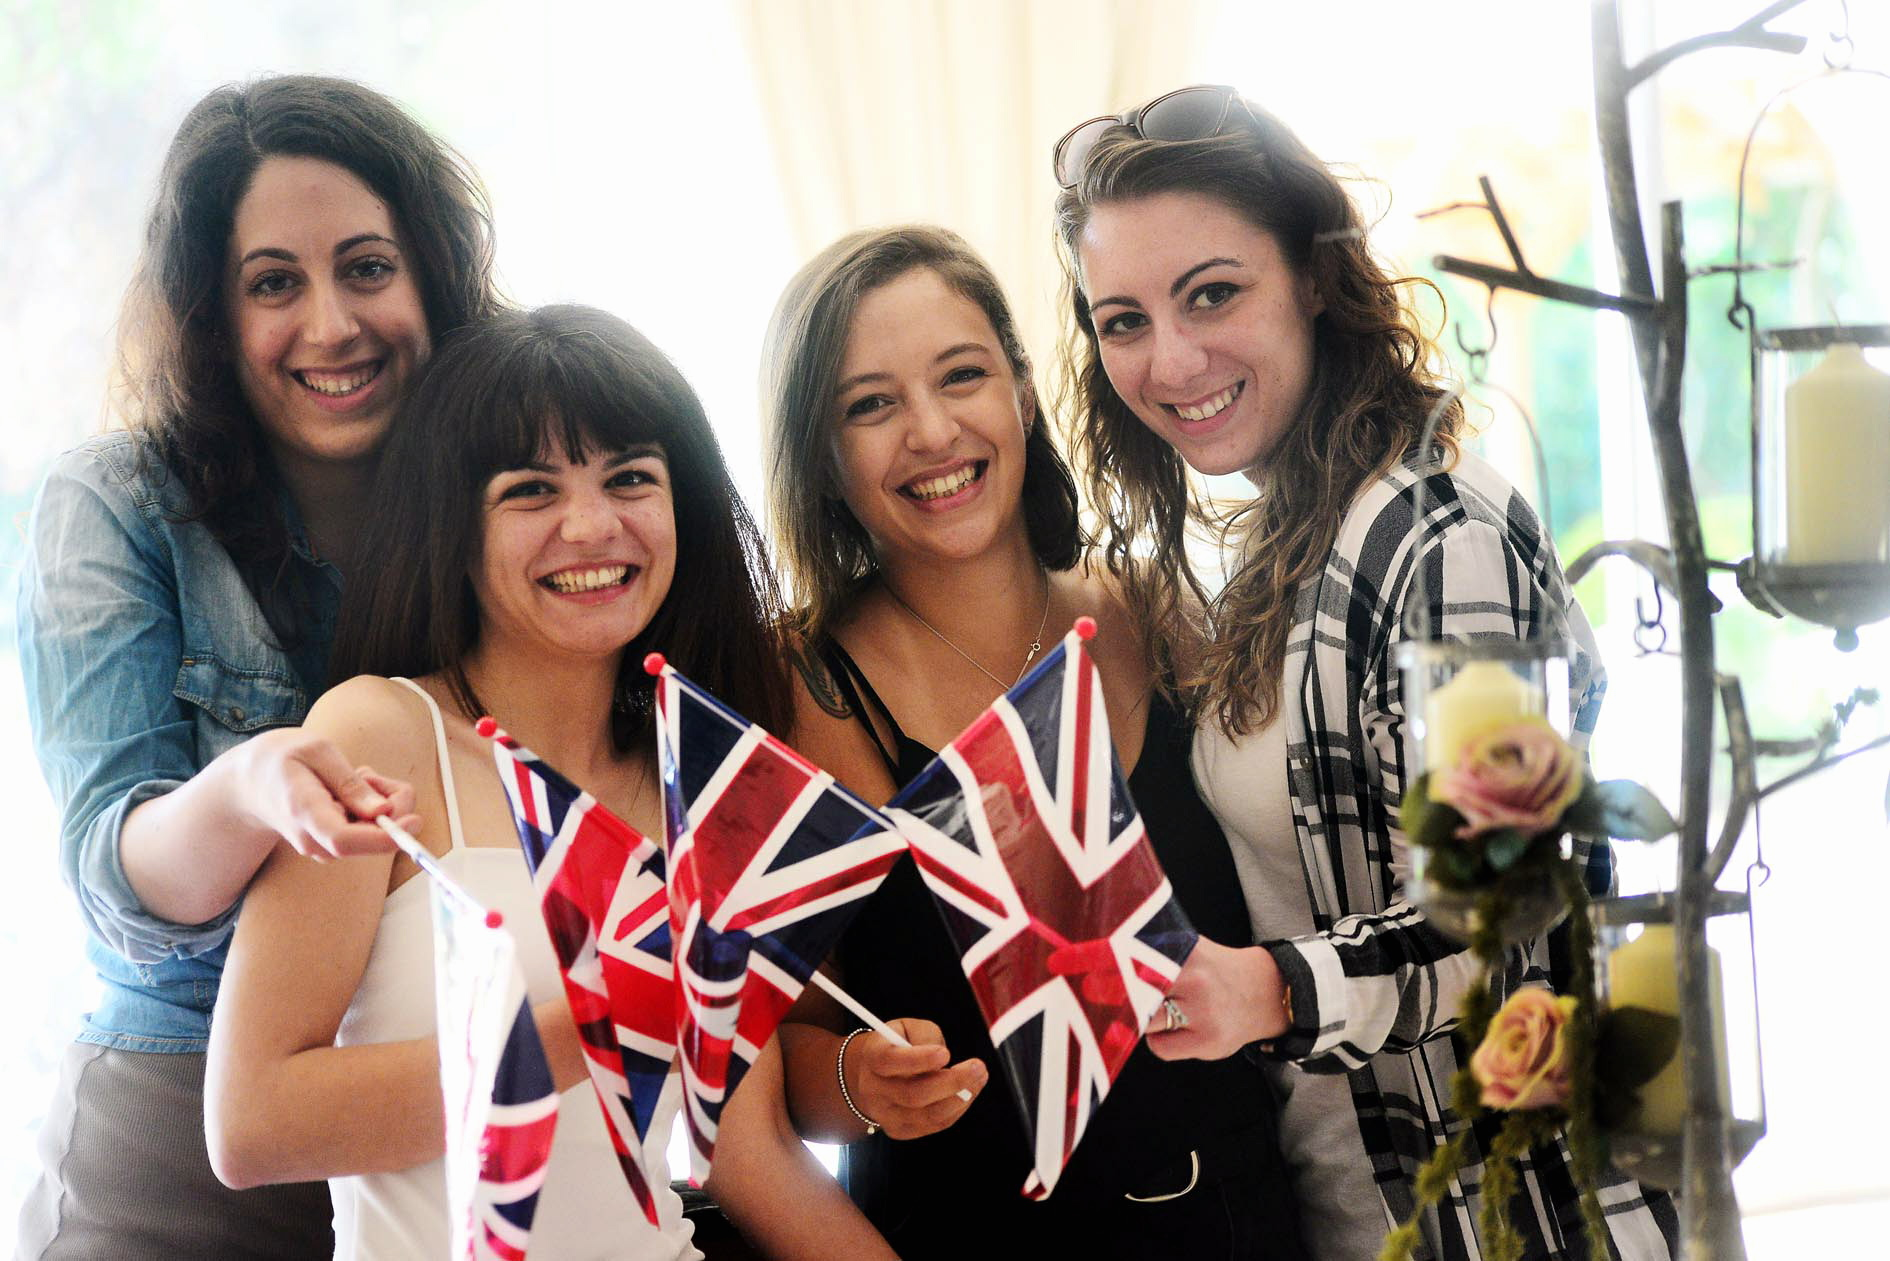 ROYAL WEDDING: Sara Manca, Linda D'incau, Alessia Carlini and Simona Vetrone enjoy a cream tea event at Woodlands Castle